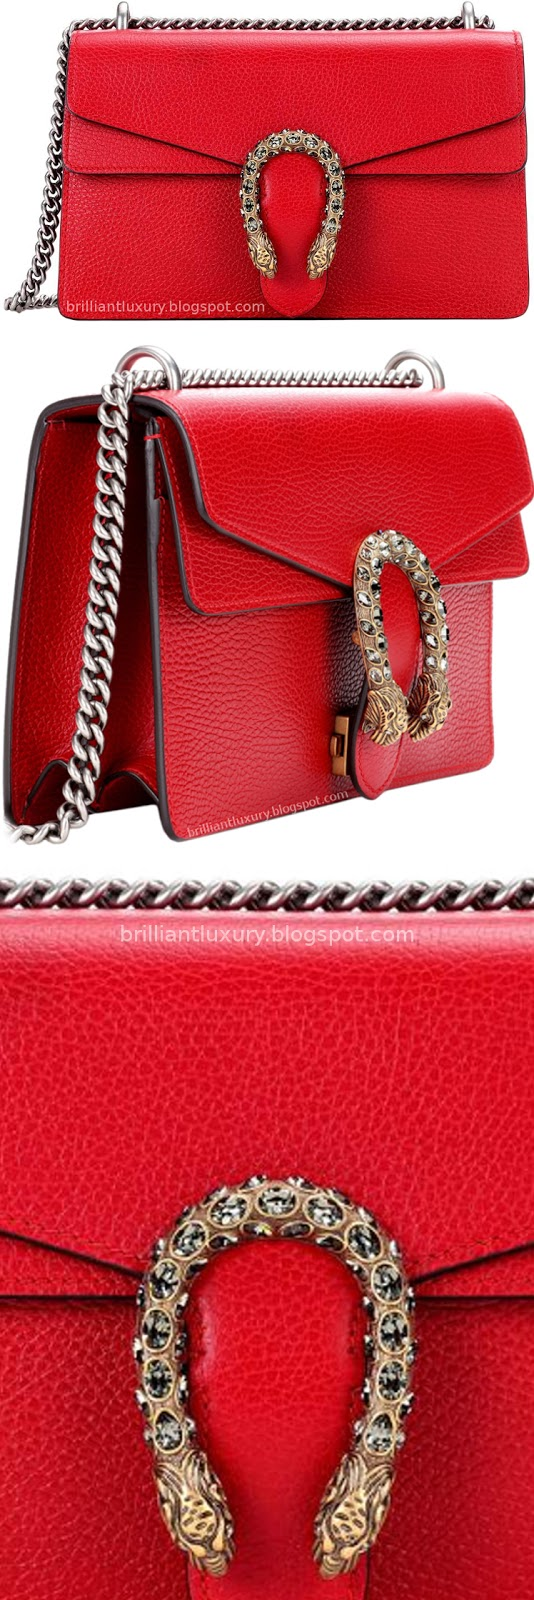 Brilliant Luxury ♦ Gucci Dionysus red leather shoulder bag